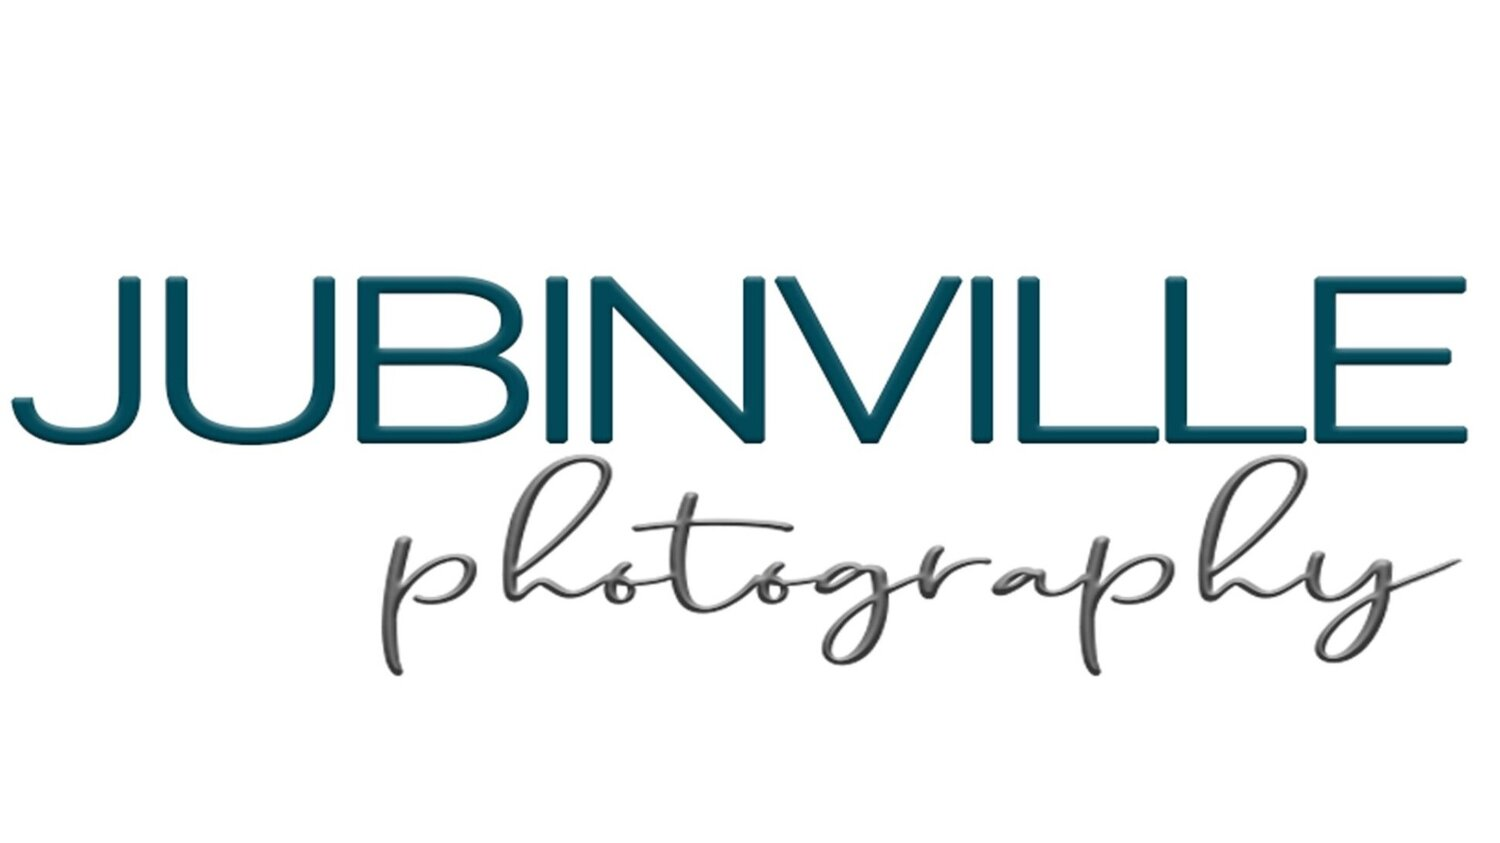 Jubinville Photography